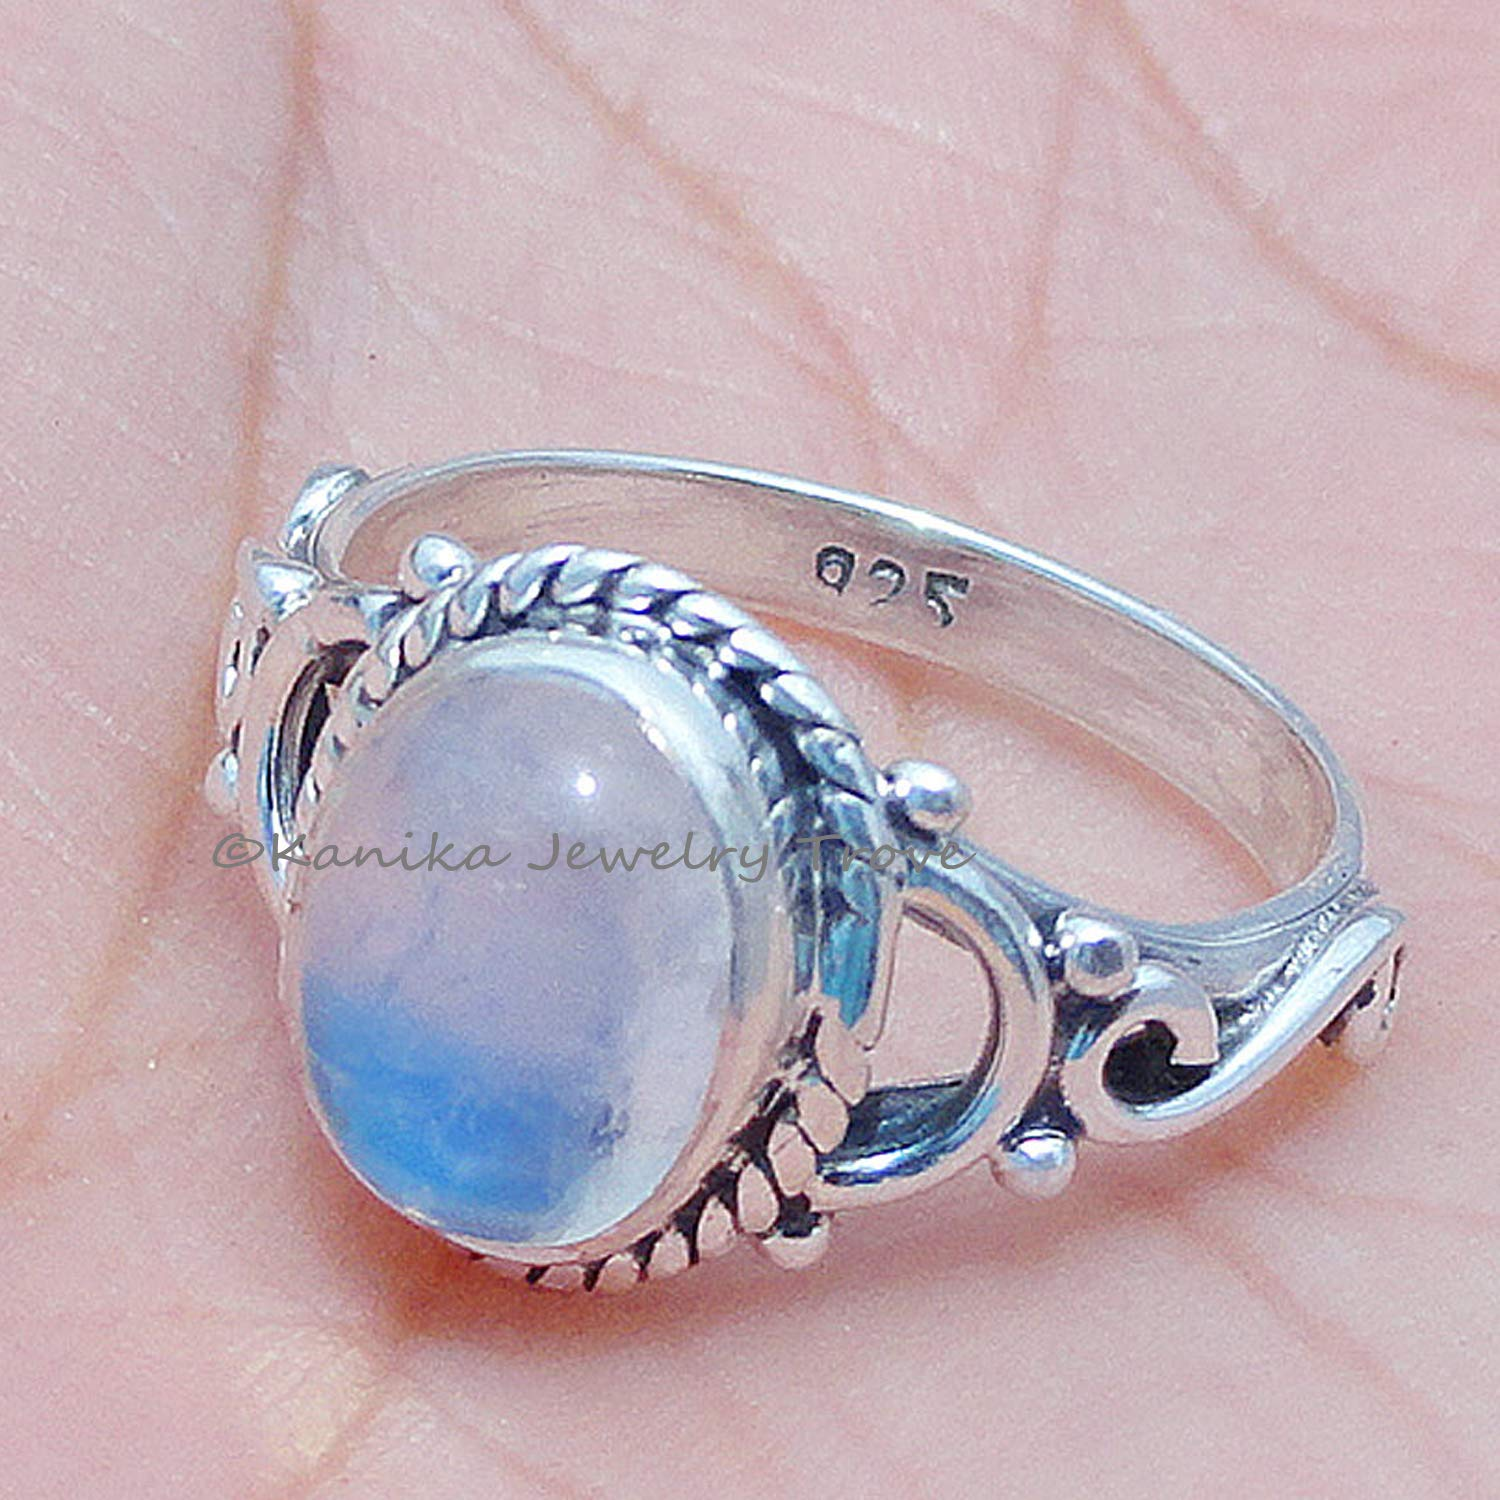 wedding ring handmade silver ring rainbow moonstone 925 silver jewelry,solid silver ring birthstone ring